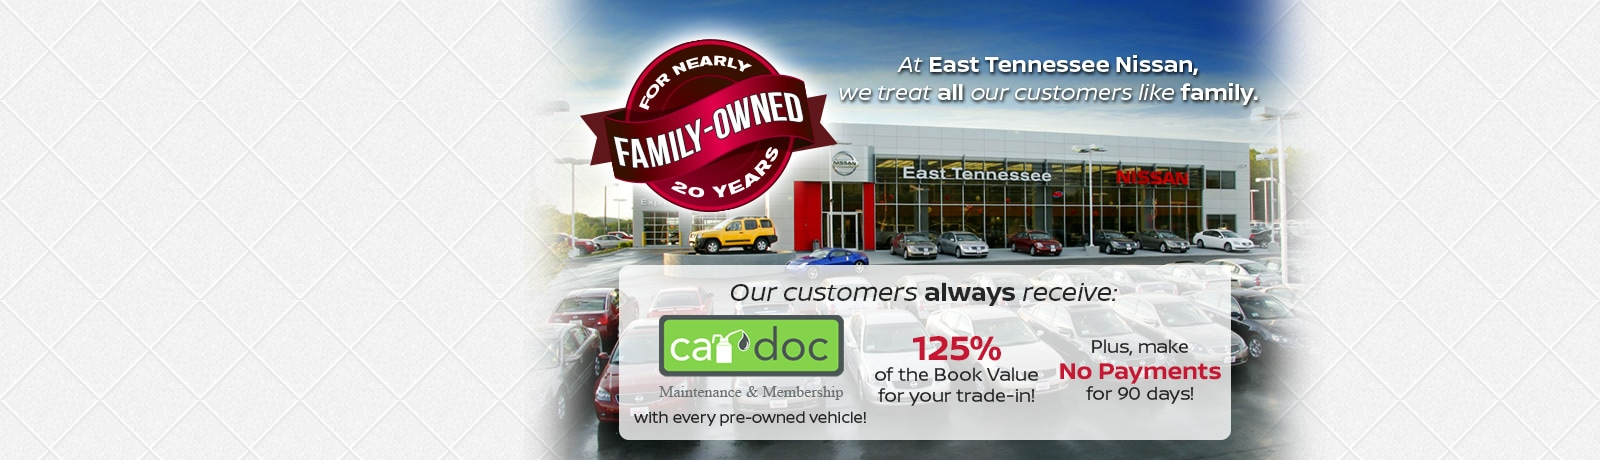 east tennessee dodge new used pre owned car. Black Bedroom Furniture Sets. Home Design Ideas